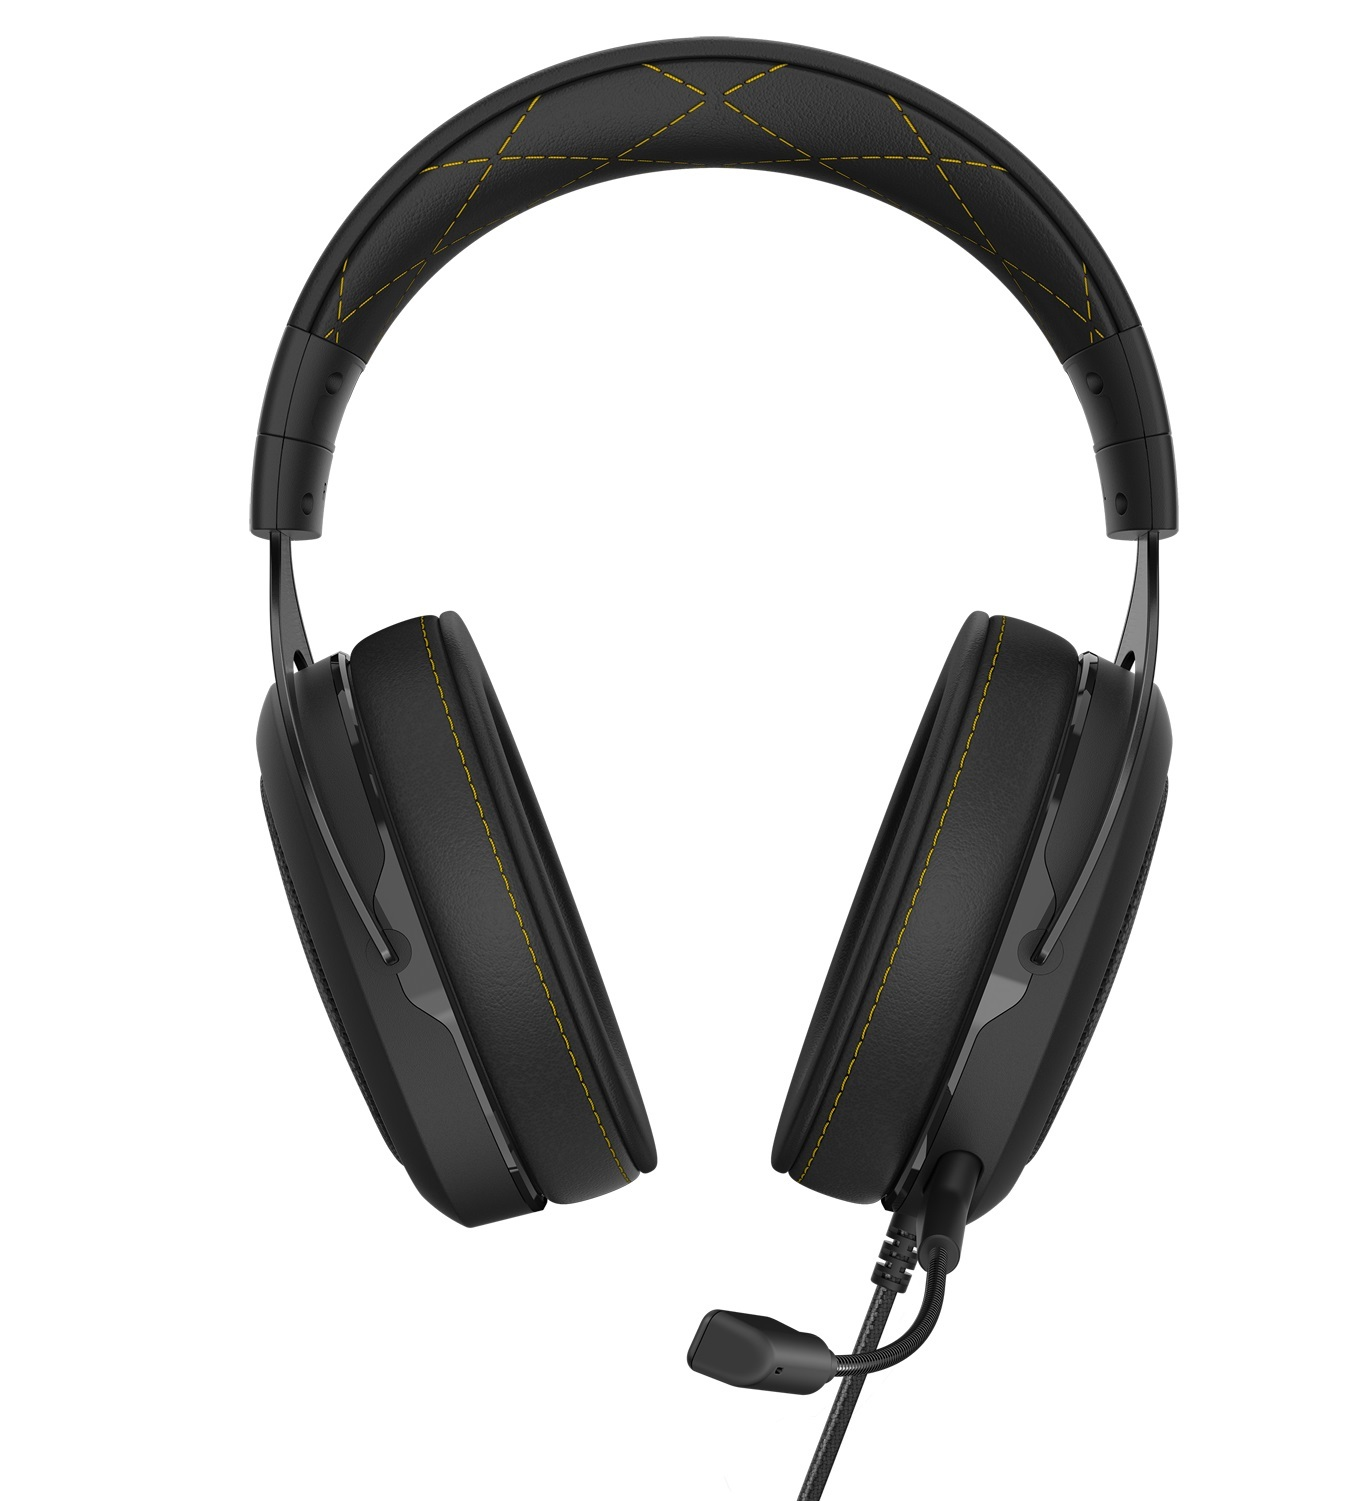 Corsair HS60 Pro Surround Gaming Headset (Yellow) for PC image